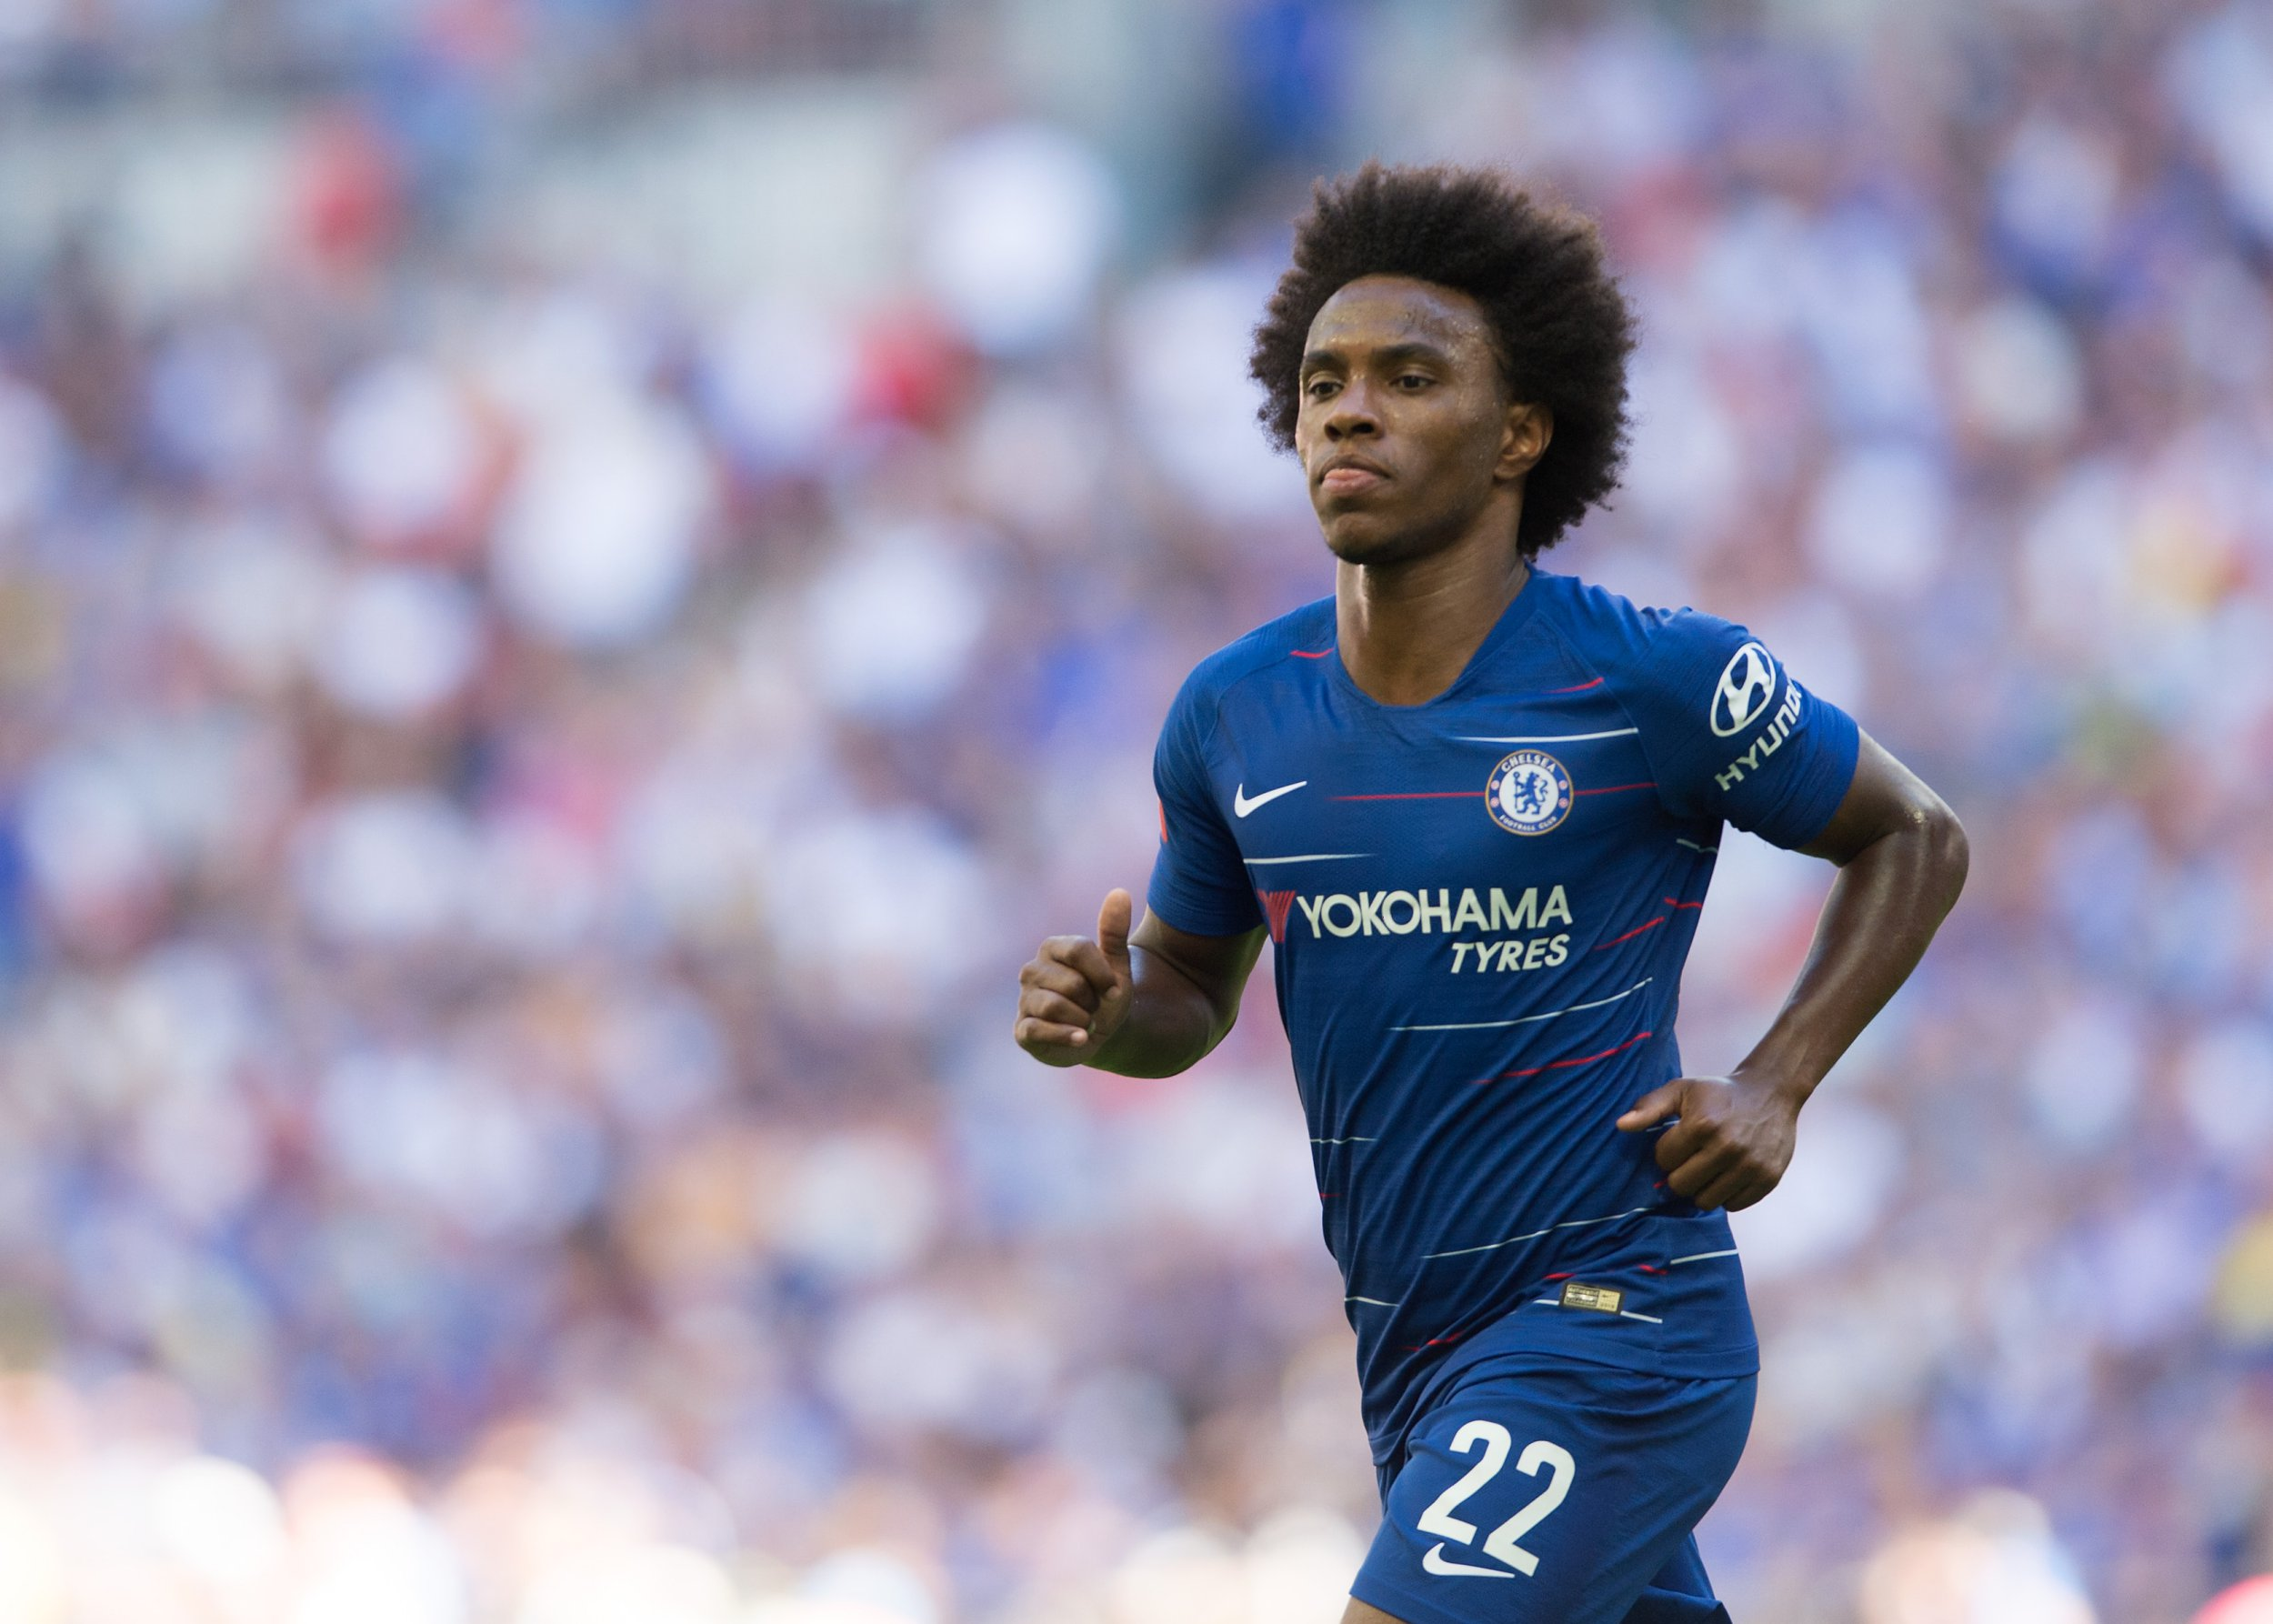 Willian of Chelsea during the The FA Community Shield Final match between Chelsea and Manchester City at Stamford Bridge, London, England on 5 August 2018. Photo by Vince Mignott / PRiME Media.